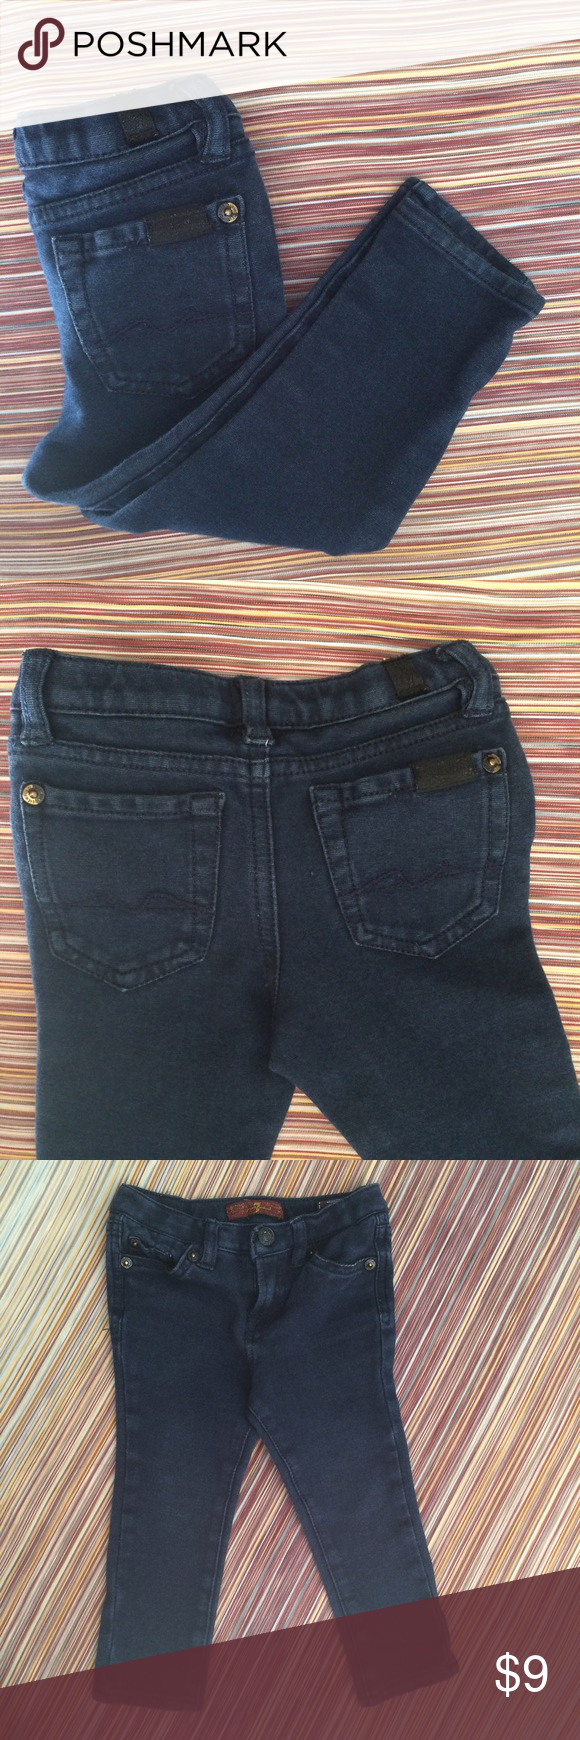 7 for all Mankind Toddler Jeans | Signs, Girls and Toddler jeans